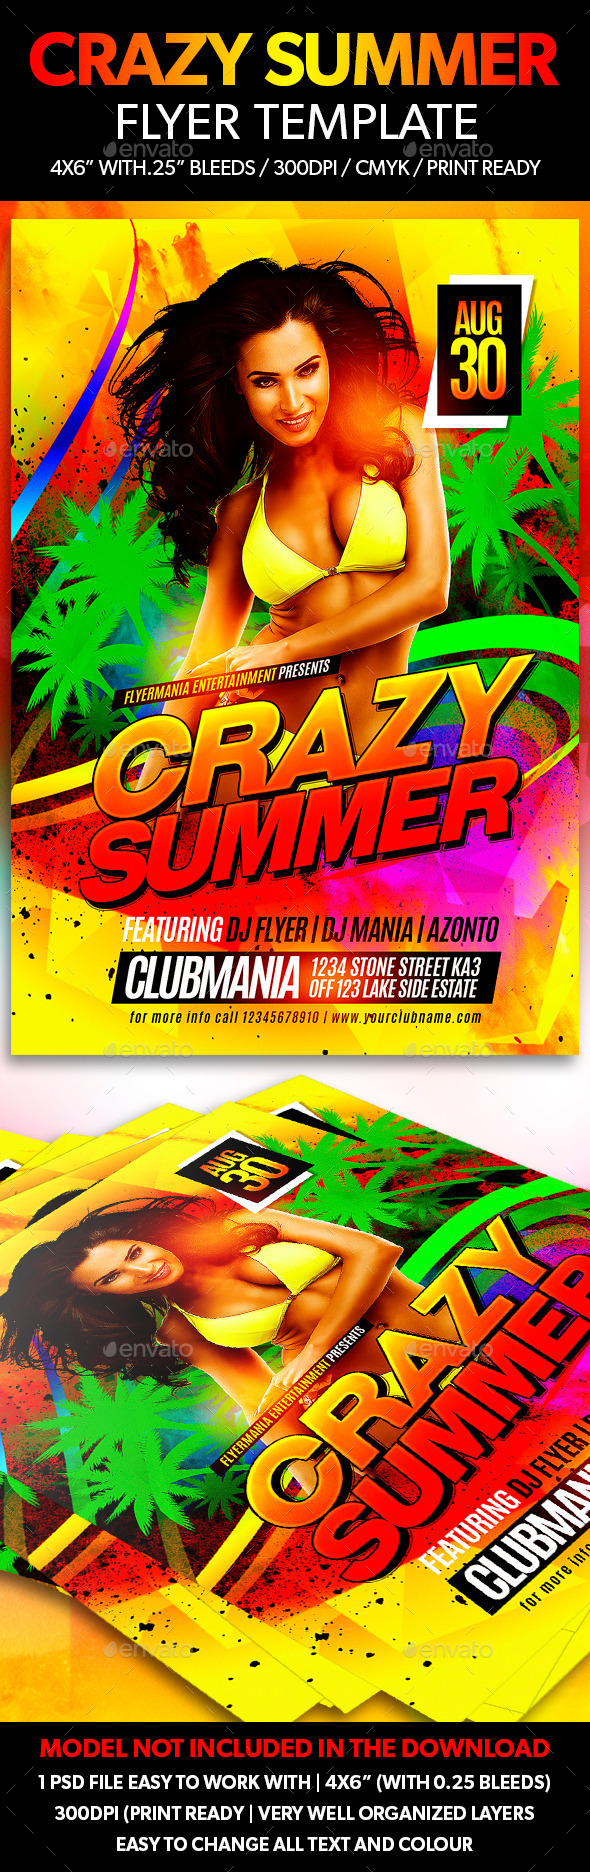 Crazy Summer Flyer Template